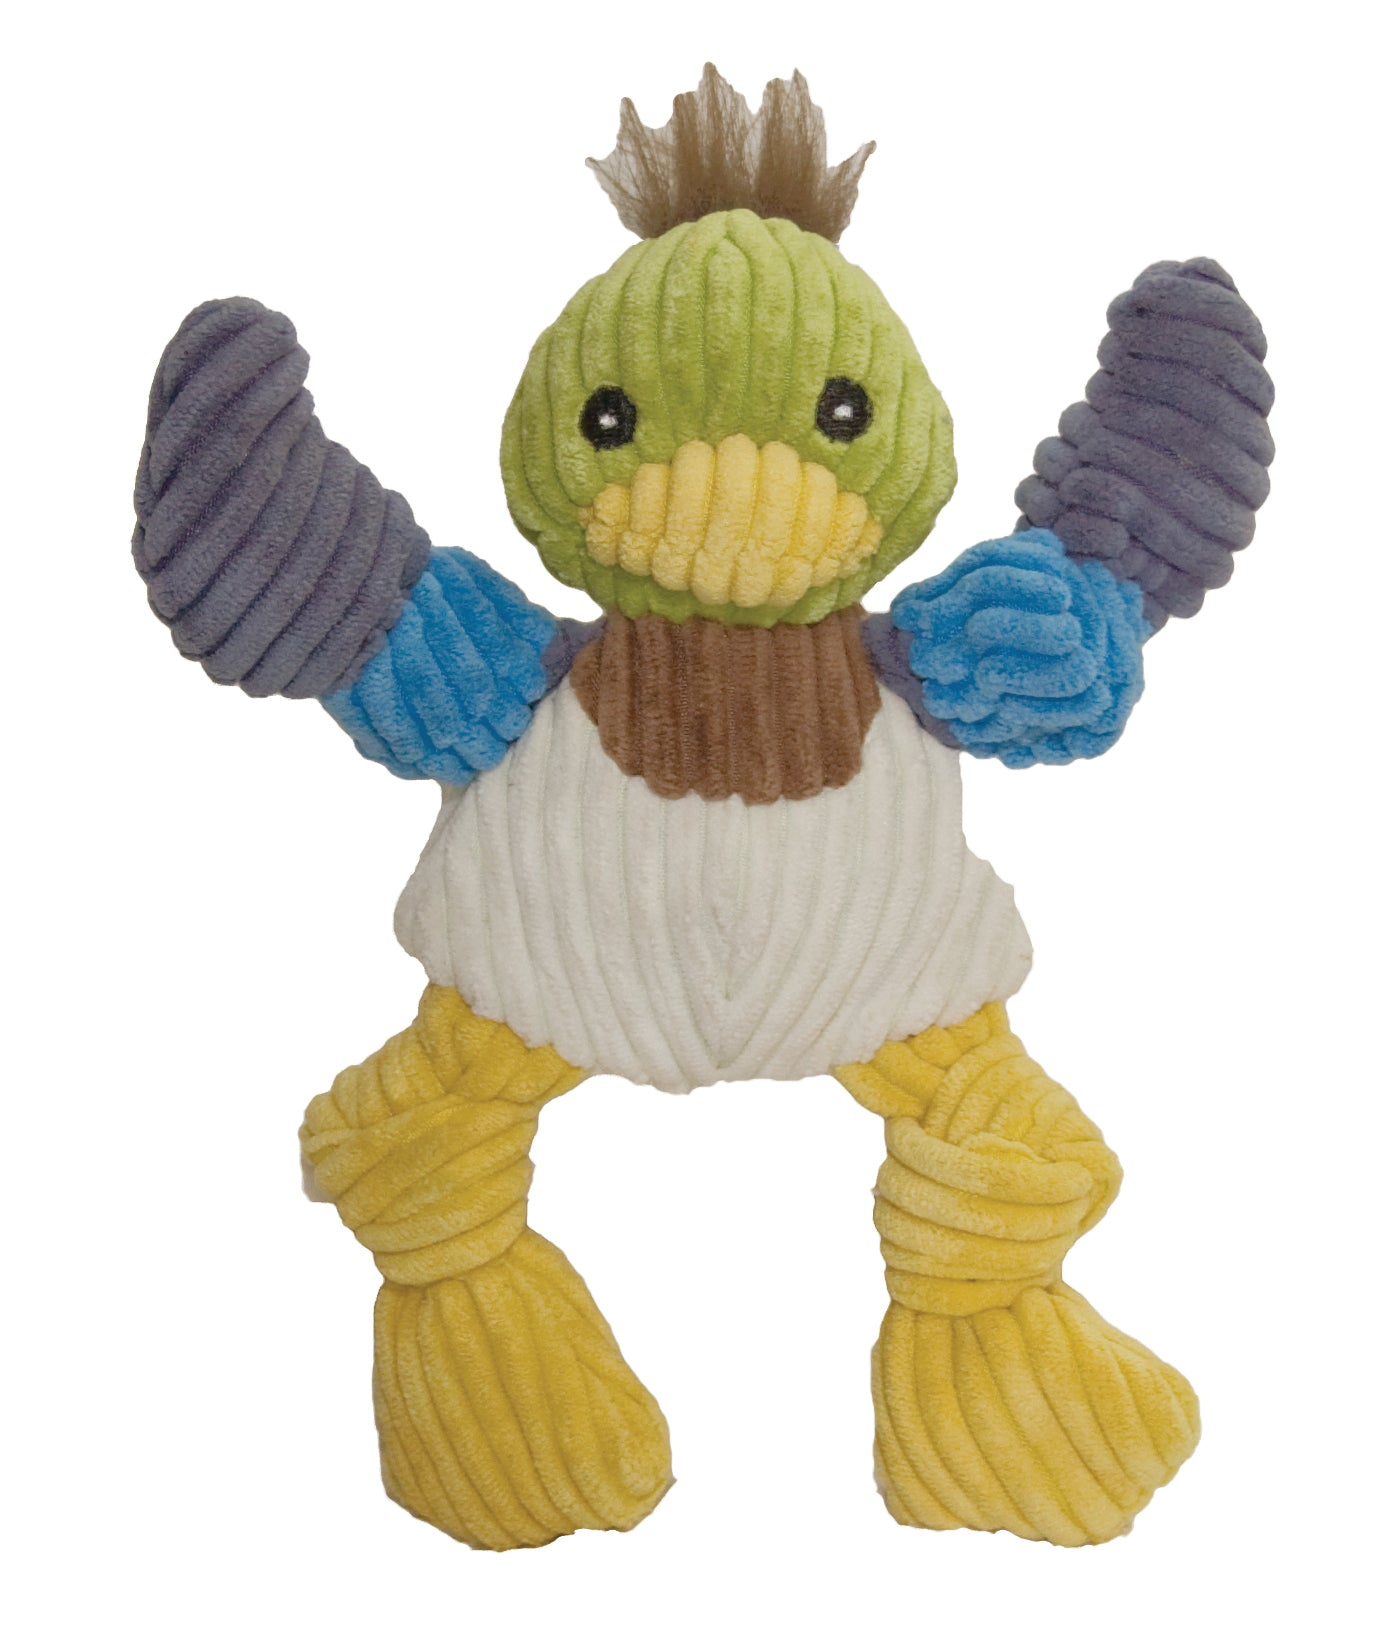 Knottie Duck Toy - Dog Toy - Durable Toy - 3 Sizes